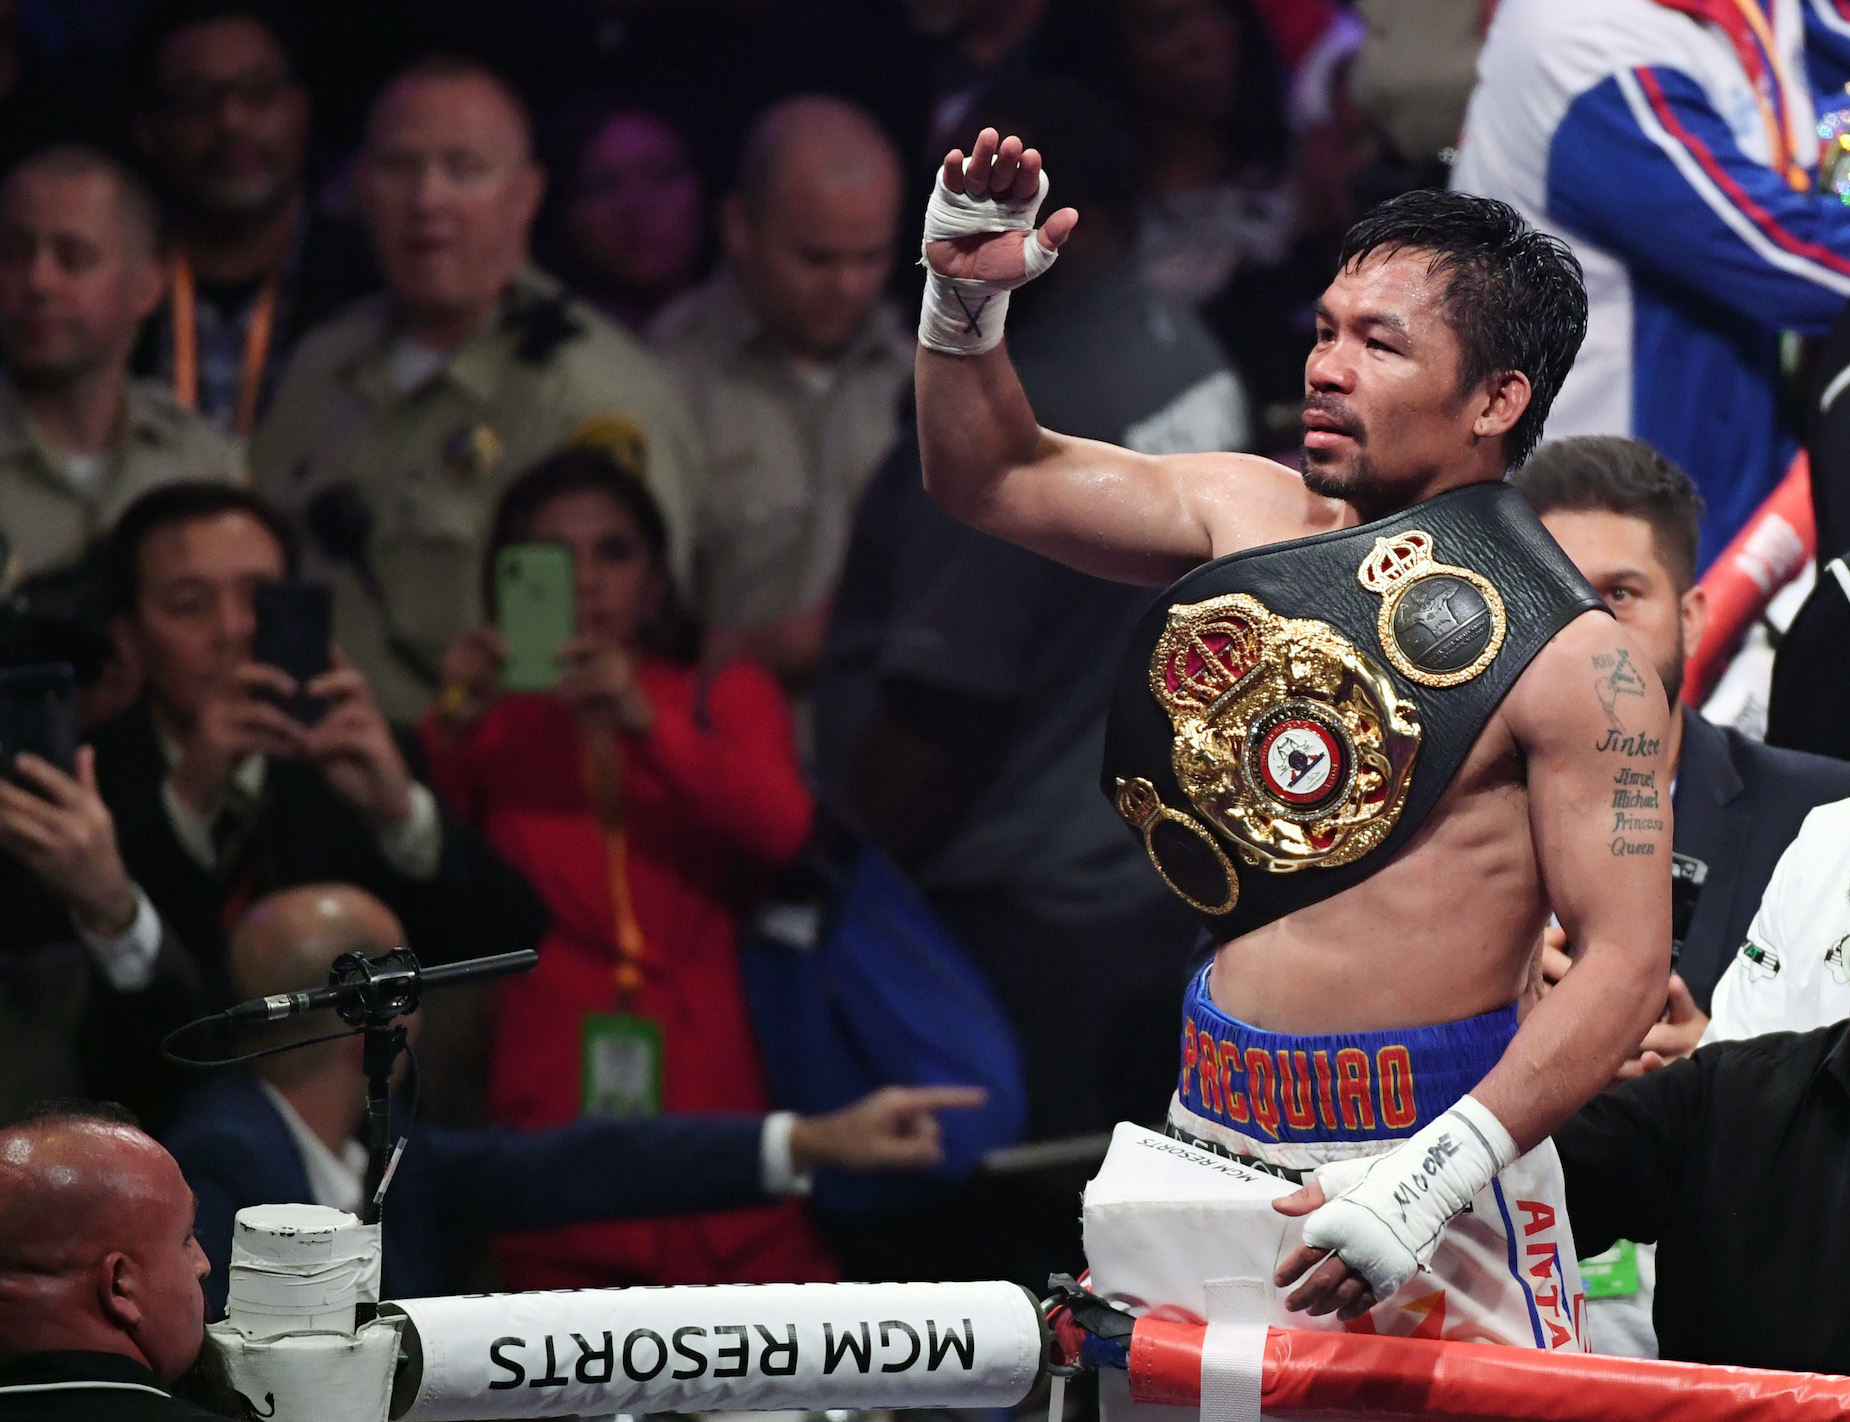 Manny Pacquiao Has a Plan to Add an Extra $40 Million to his Already-Massive Net Worth